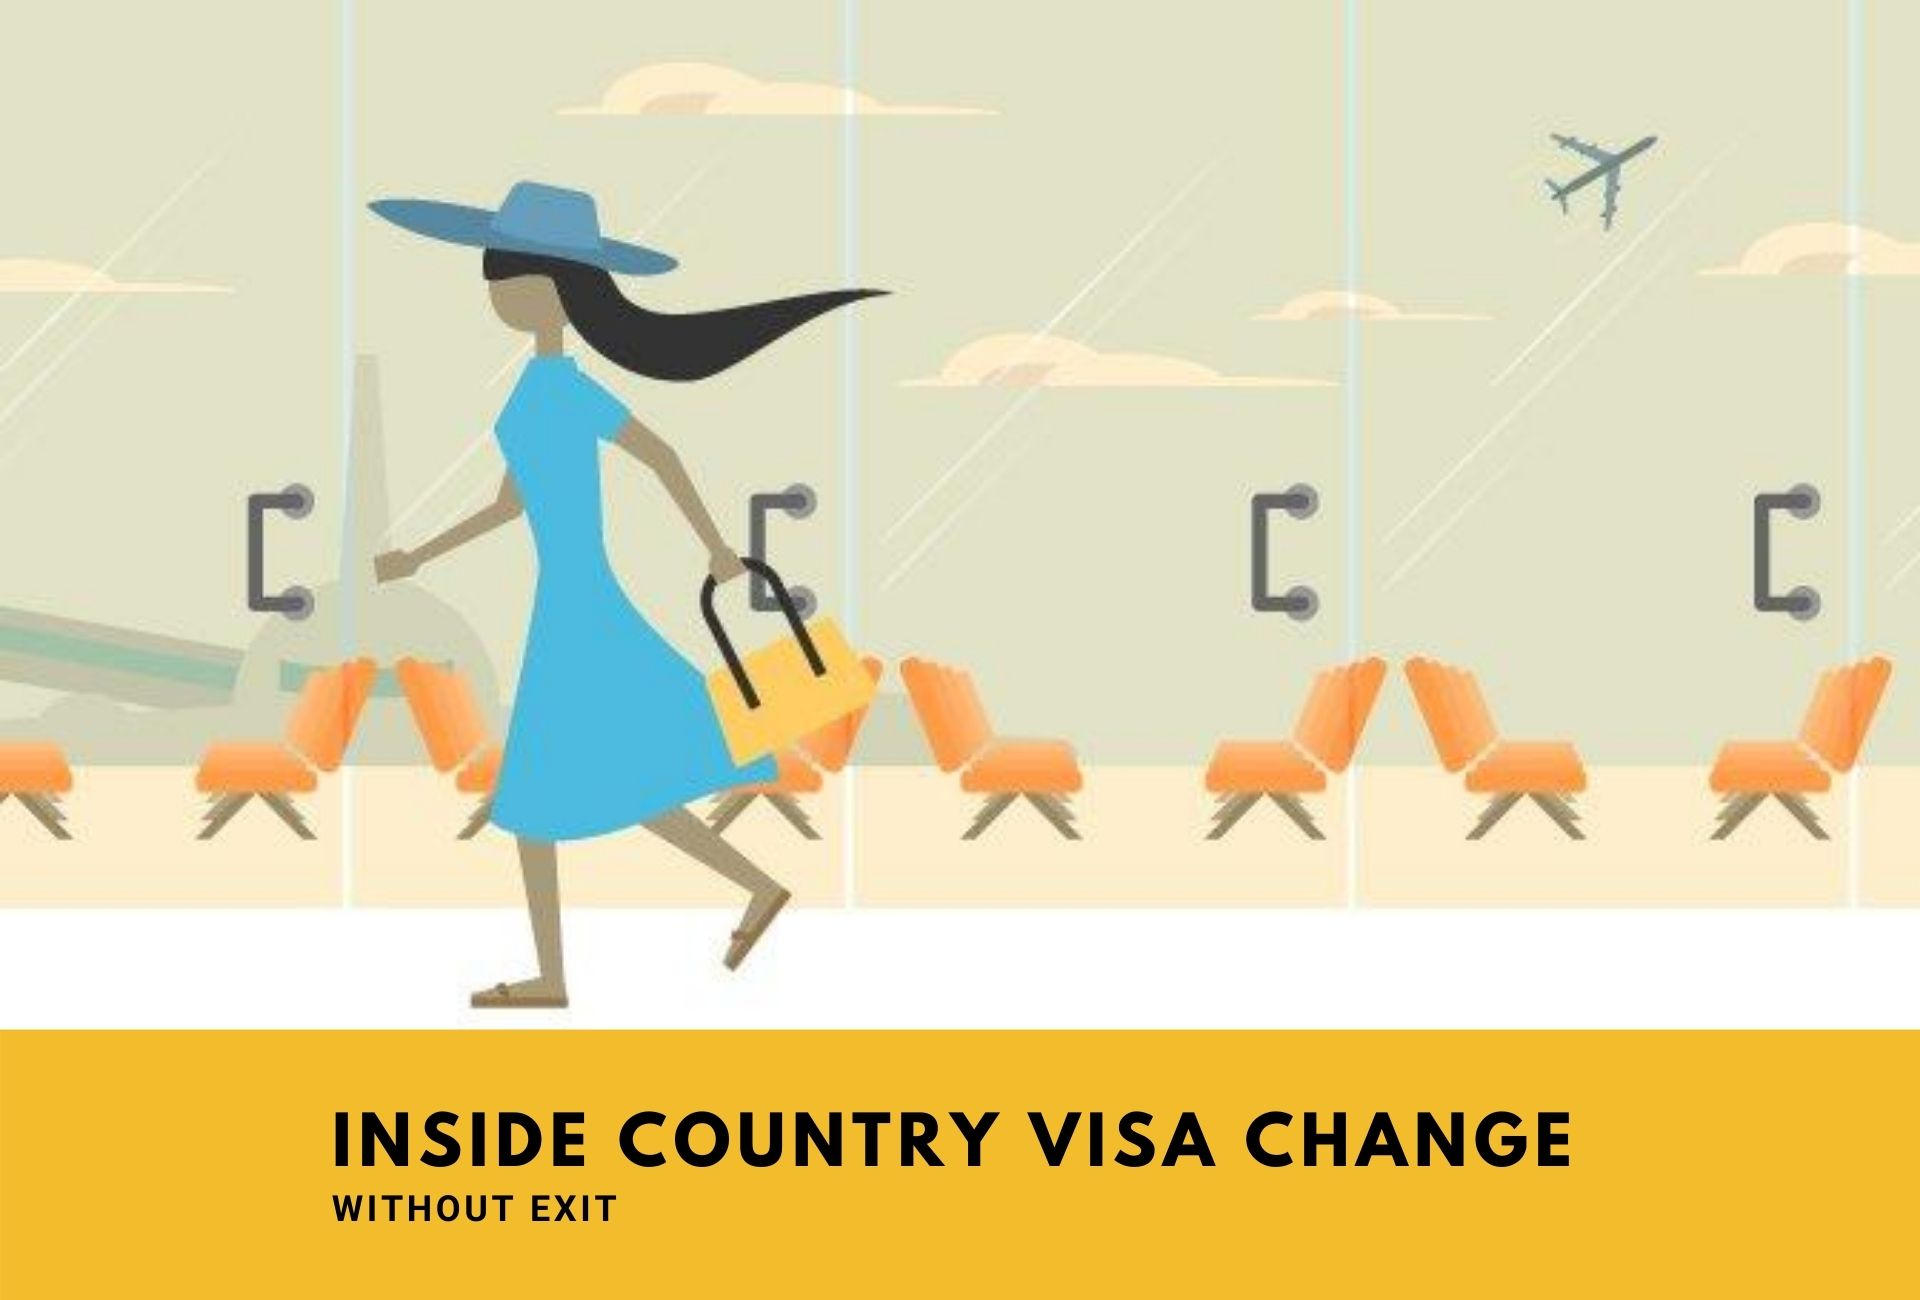 Visa Change Inside Country Without Exiting UAE!